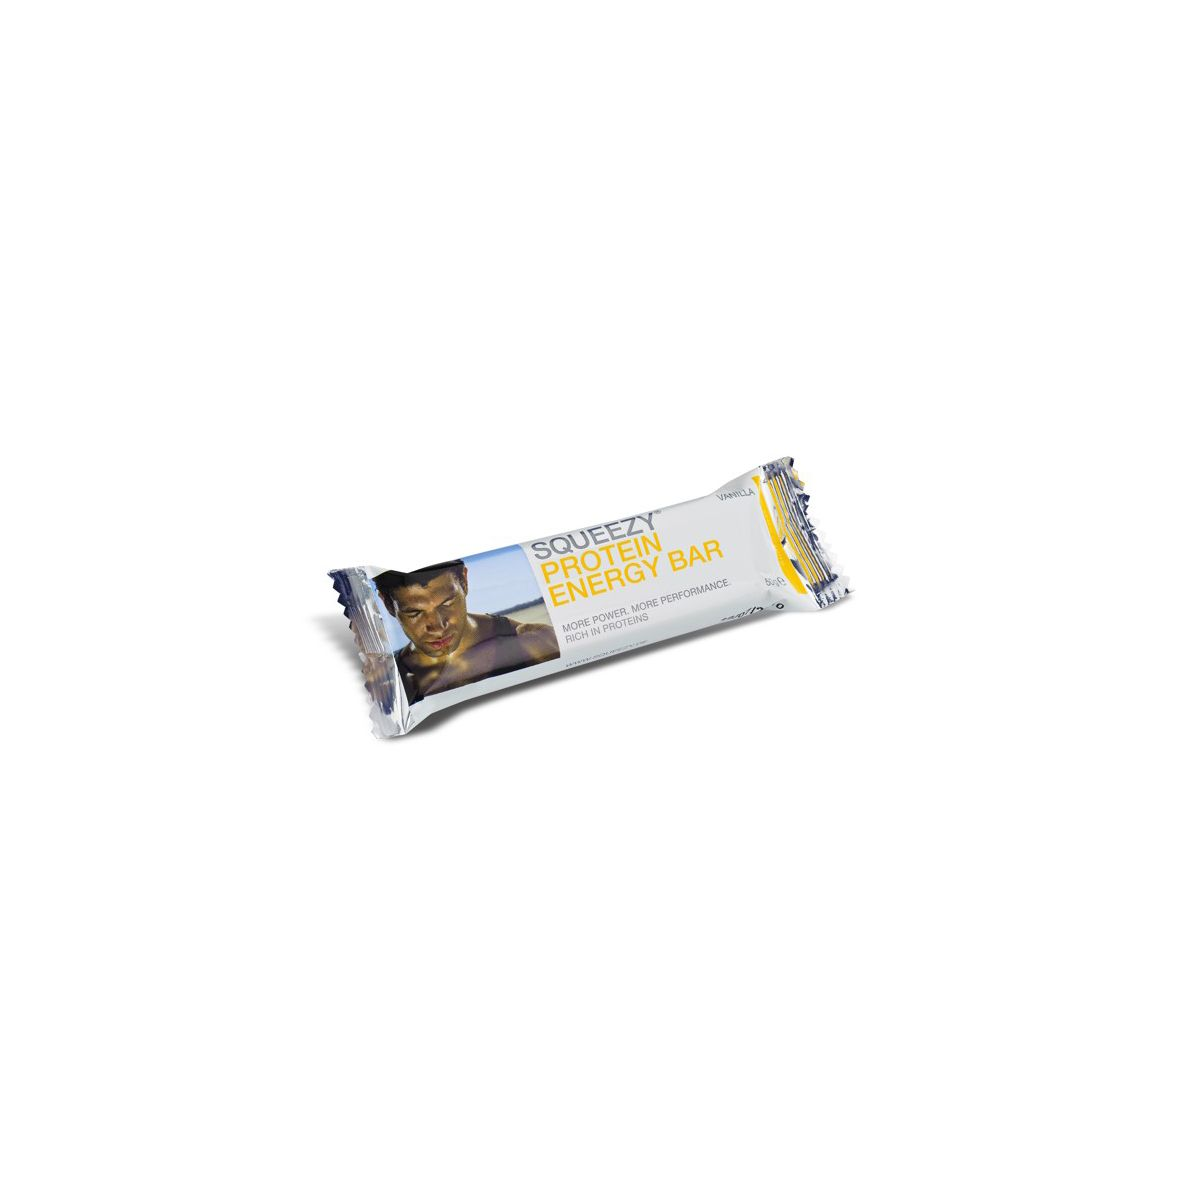 Squeezy Protein Energy Bar protein-carbohydrate bar | Proteinbar og -pulver